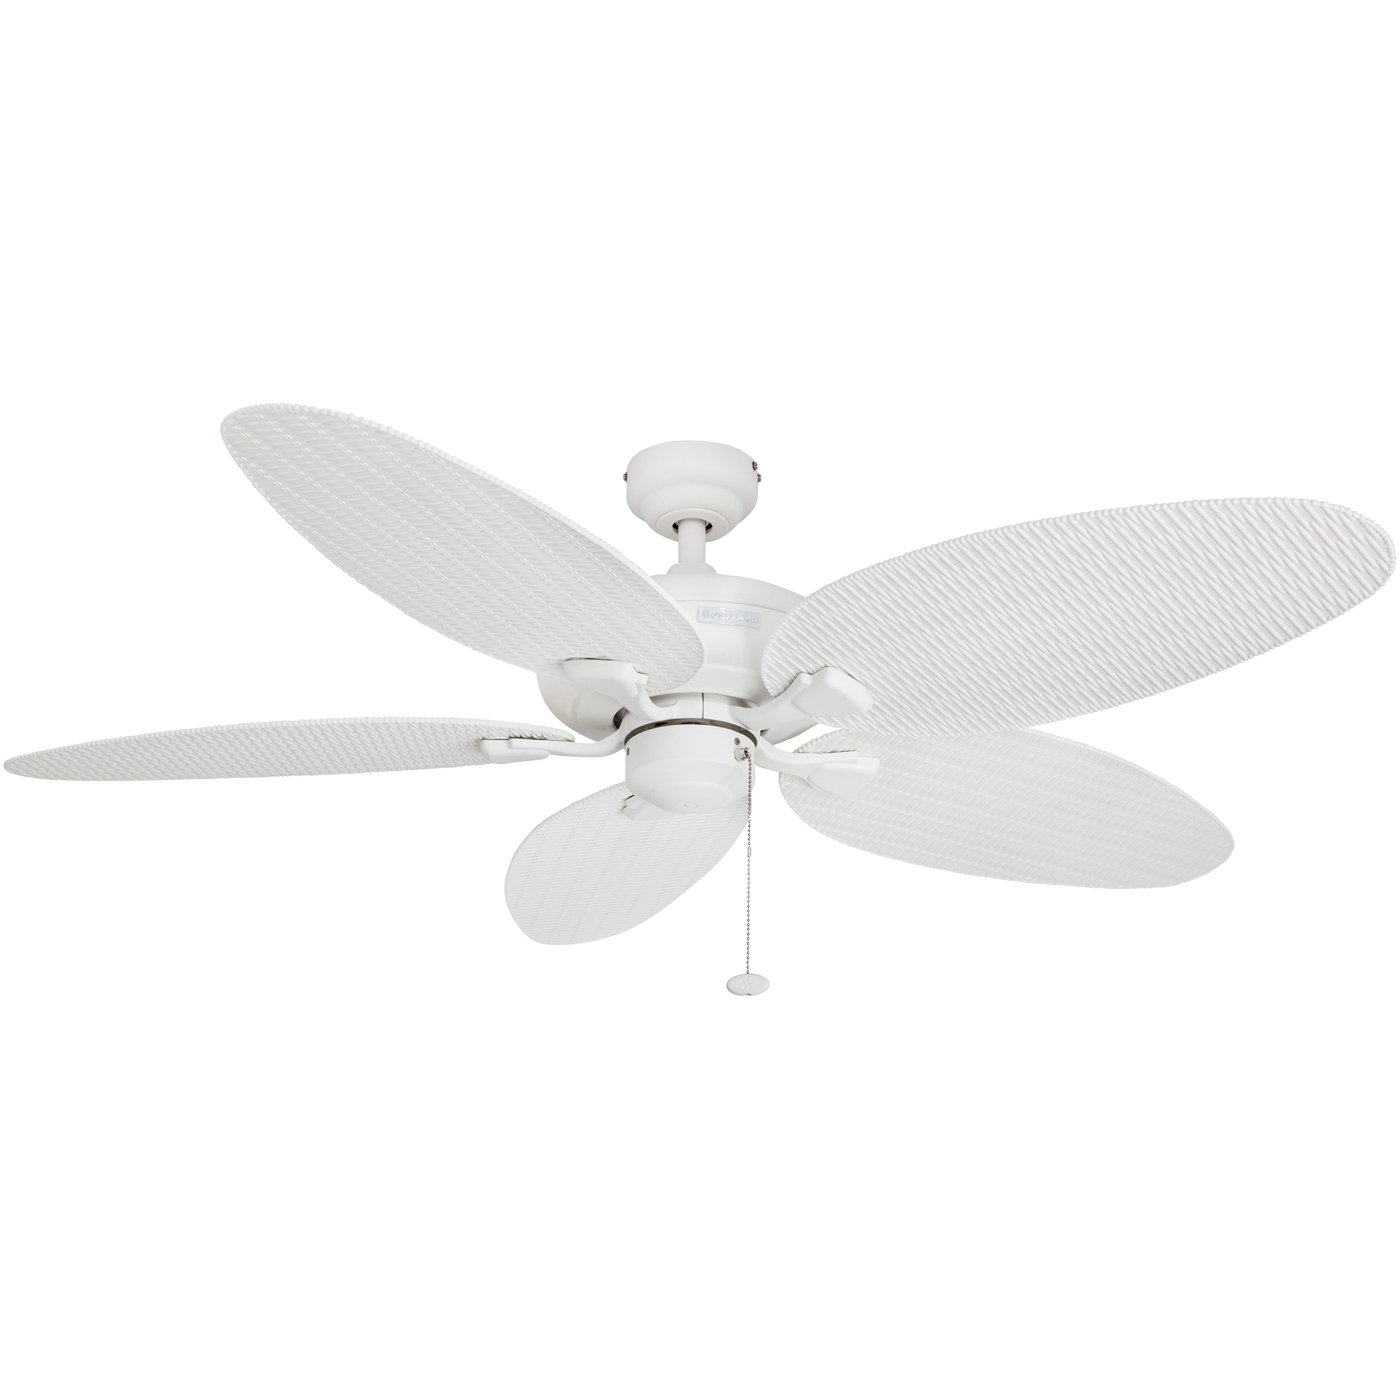 Honeywell Duvall 52-Inch Tropical Ceiling Fan, Five Wet Rated Wicker Blades, Indoor/Outdoor, White 50206